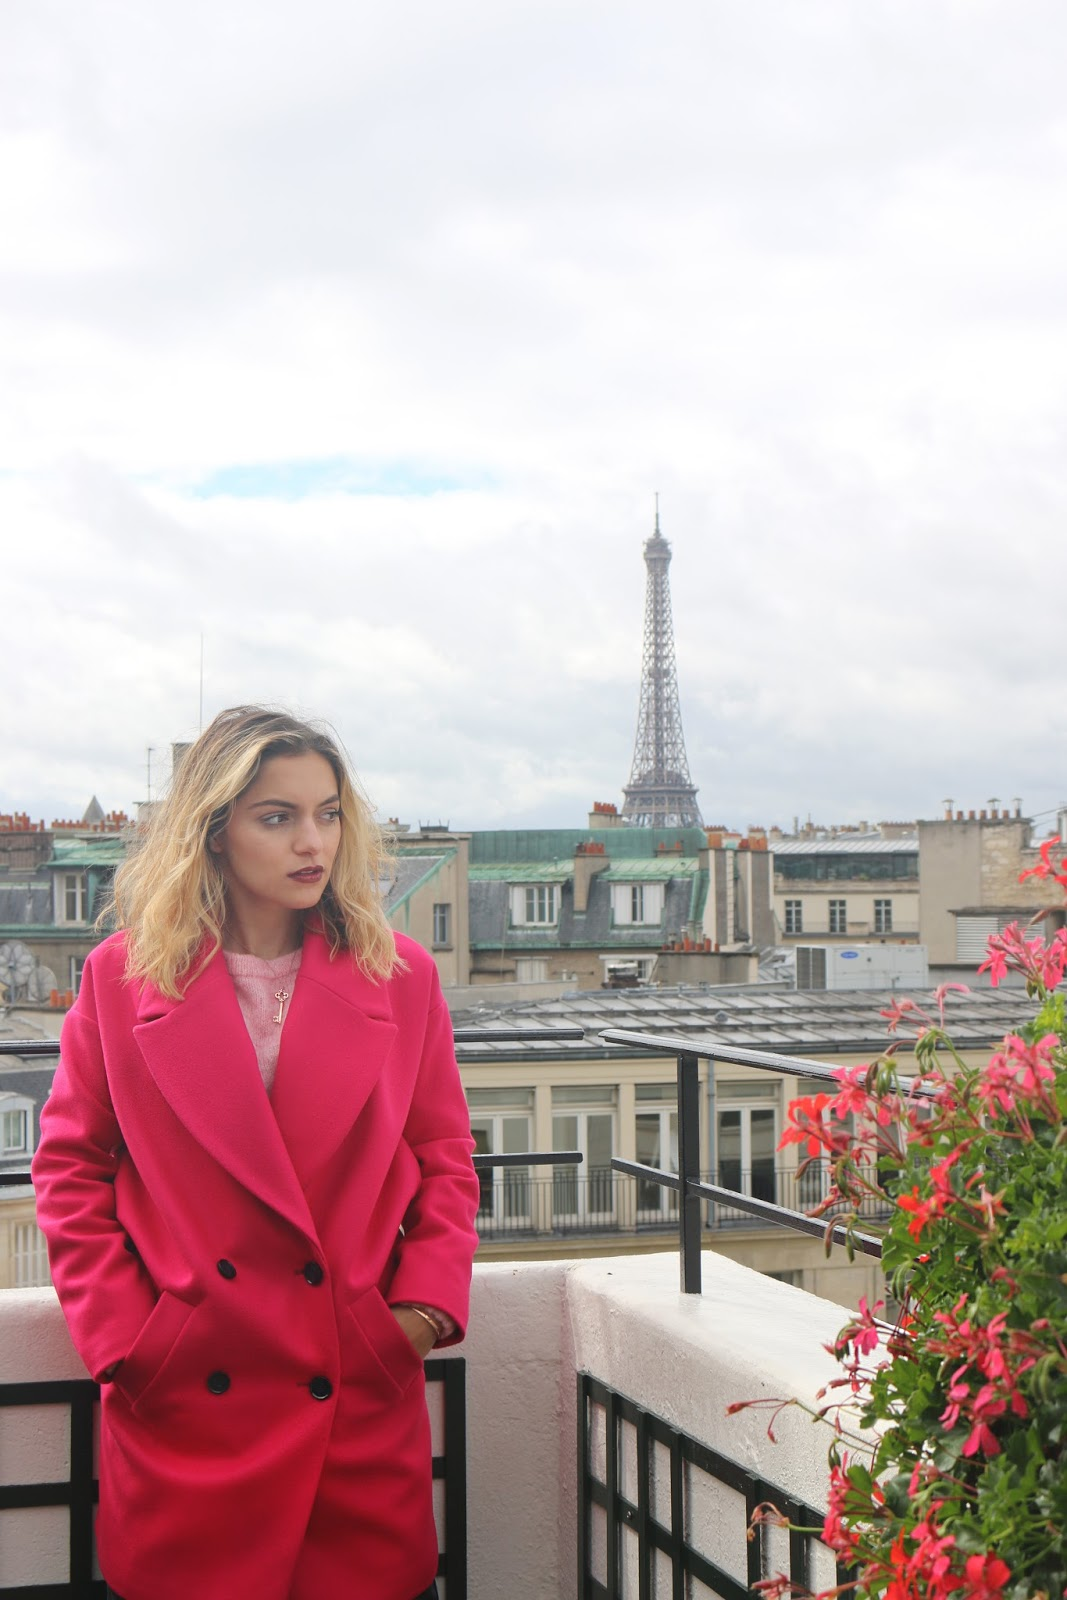 Whitney's Wonderland UK luxury lifestyle blogger reveals the Top 5 Trends for A/W 15 in conjunction with The Dressing Room St. Albans at 5 star Hotel Napoleon Paris